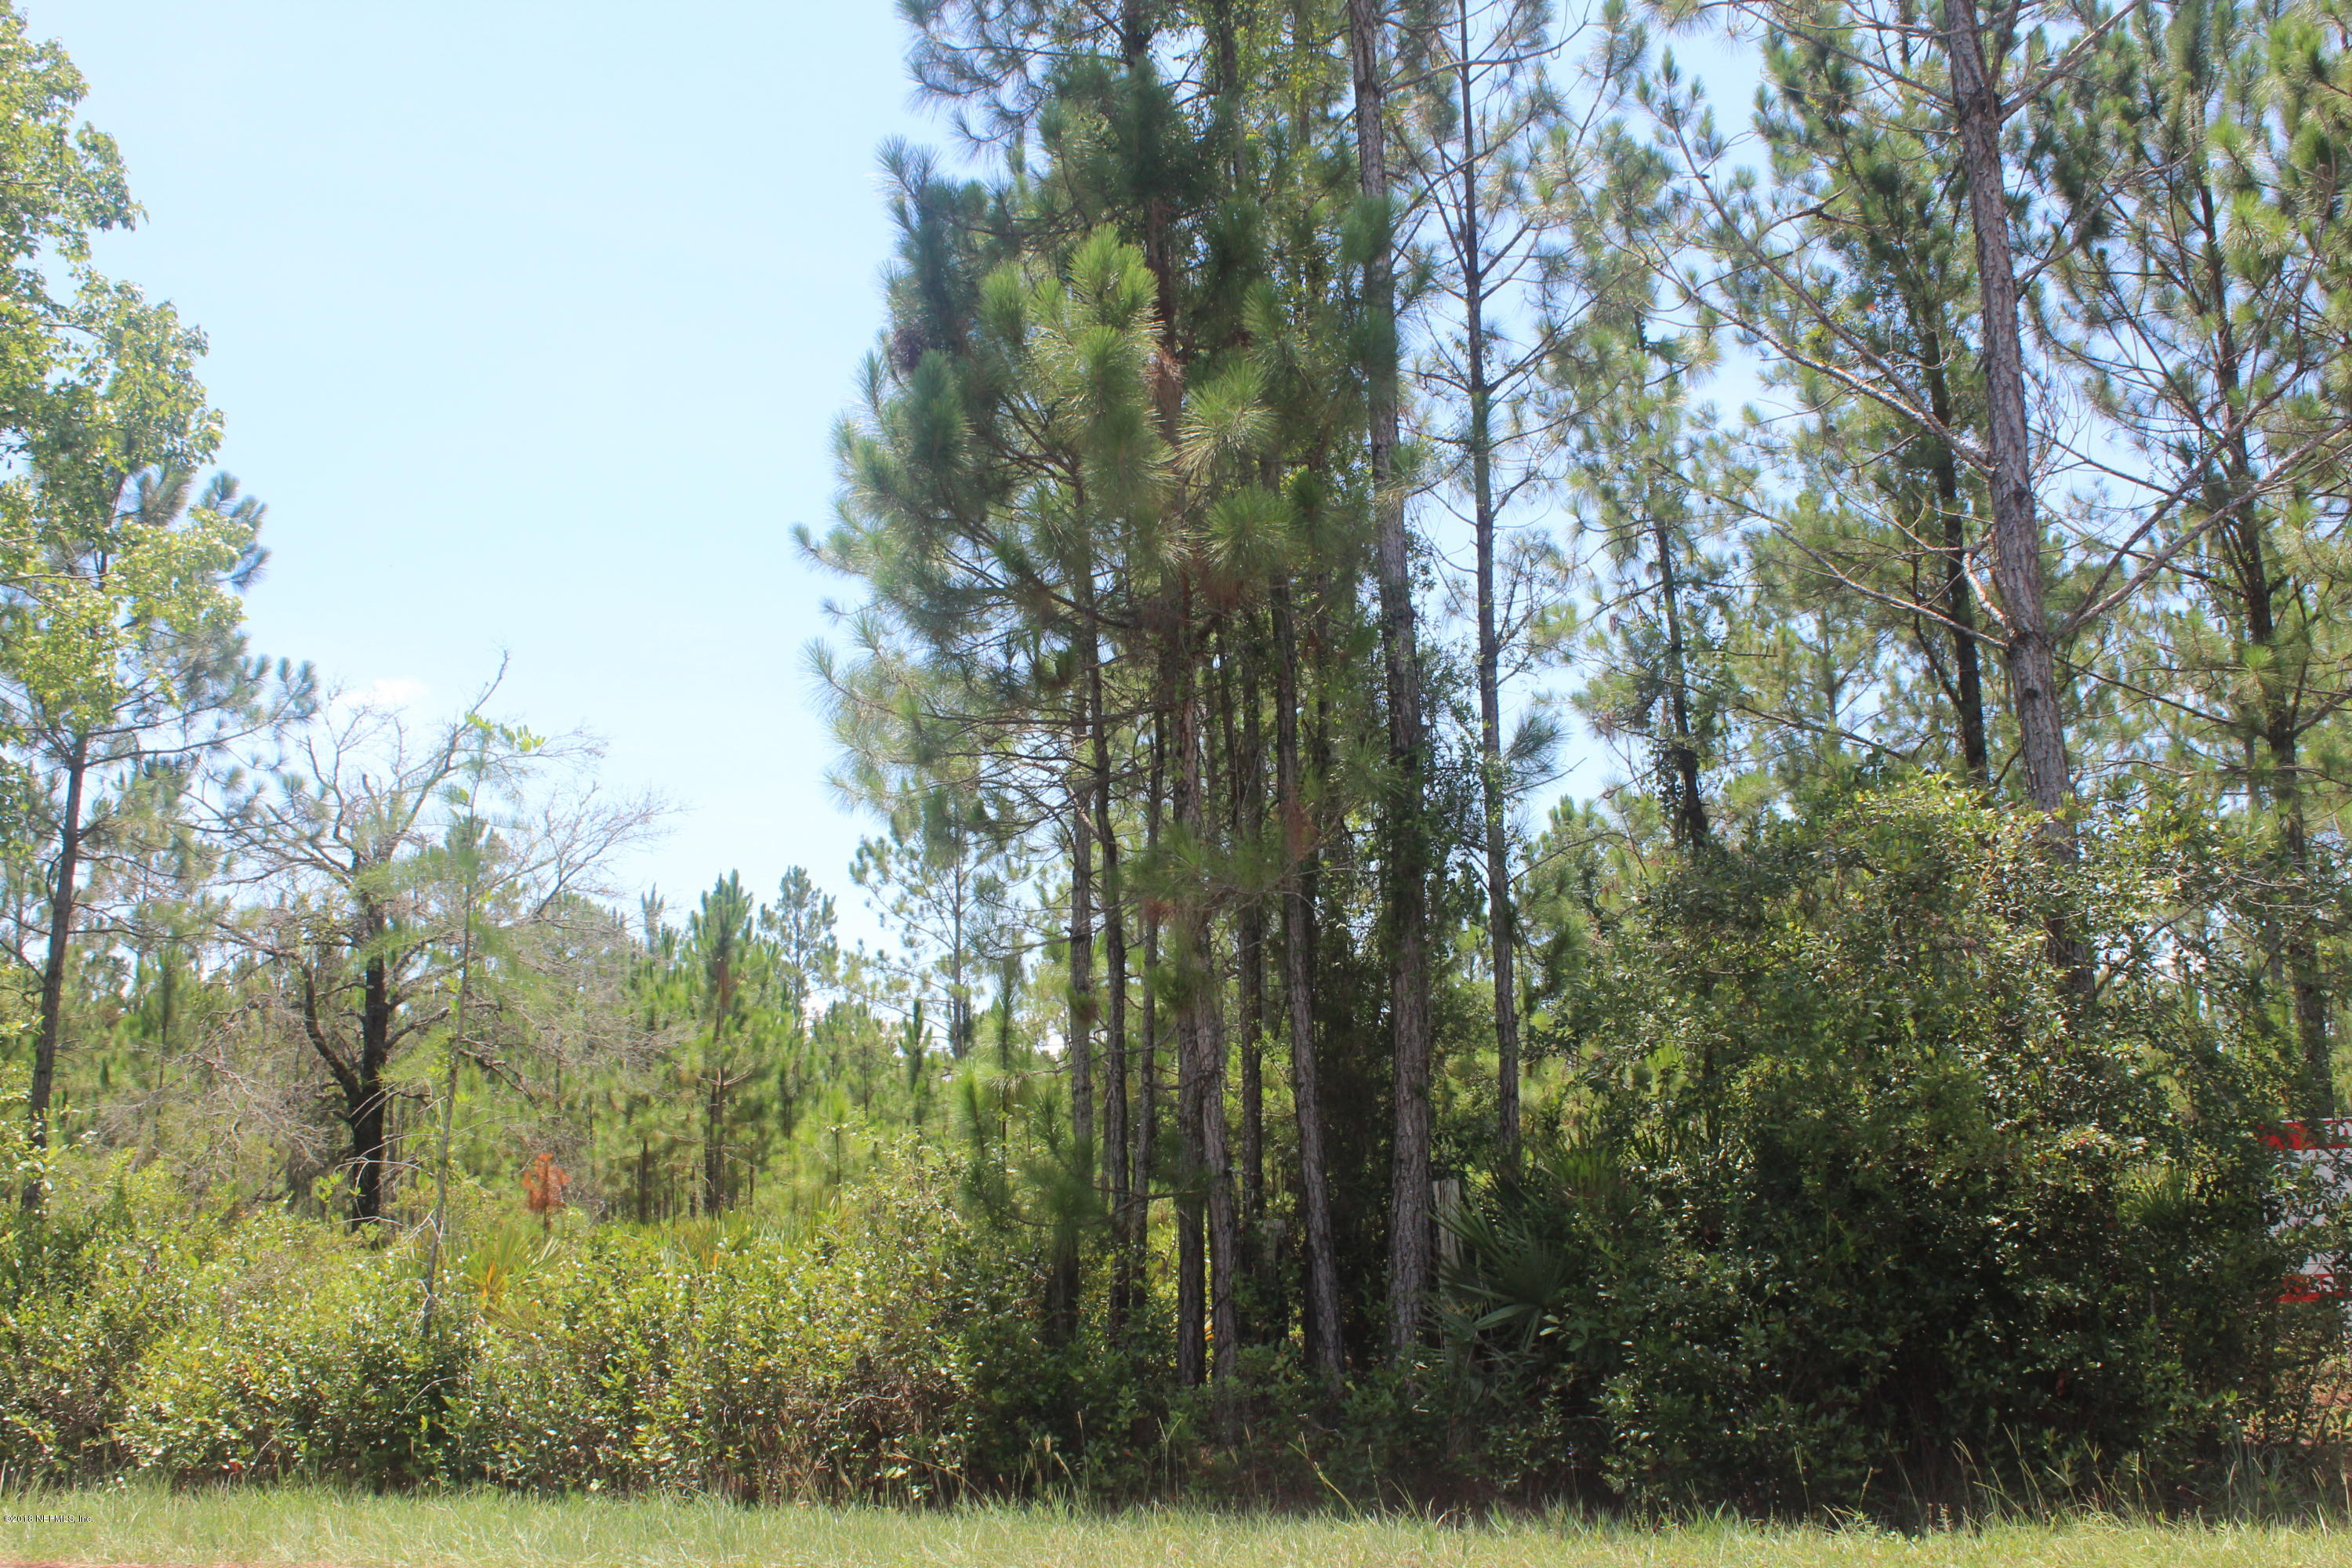 0 PLUMMER, JACKSONVILLE, FLORIDA 32219, ,Vacant land,For sale,PLUMMER,972216